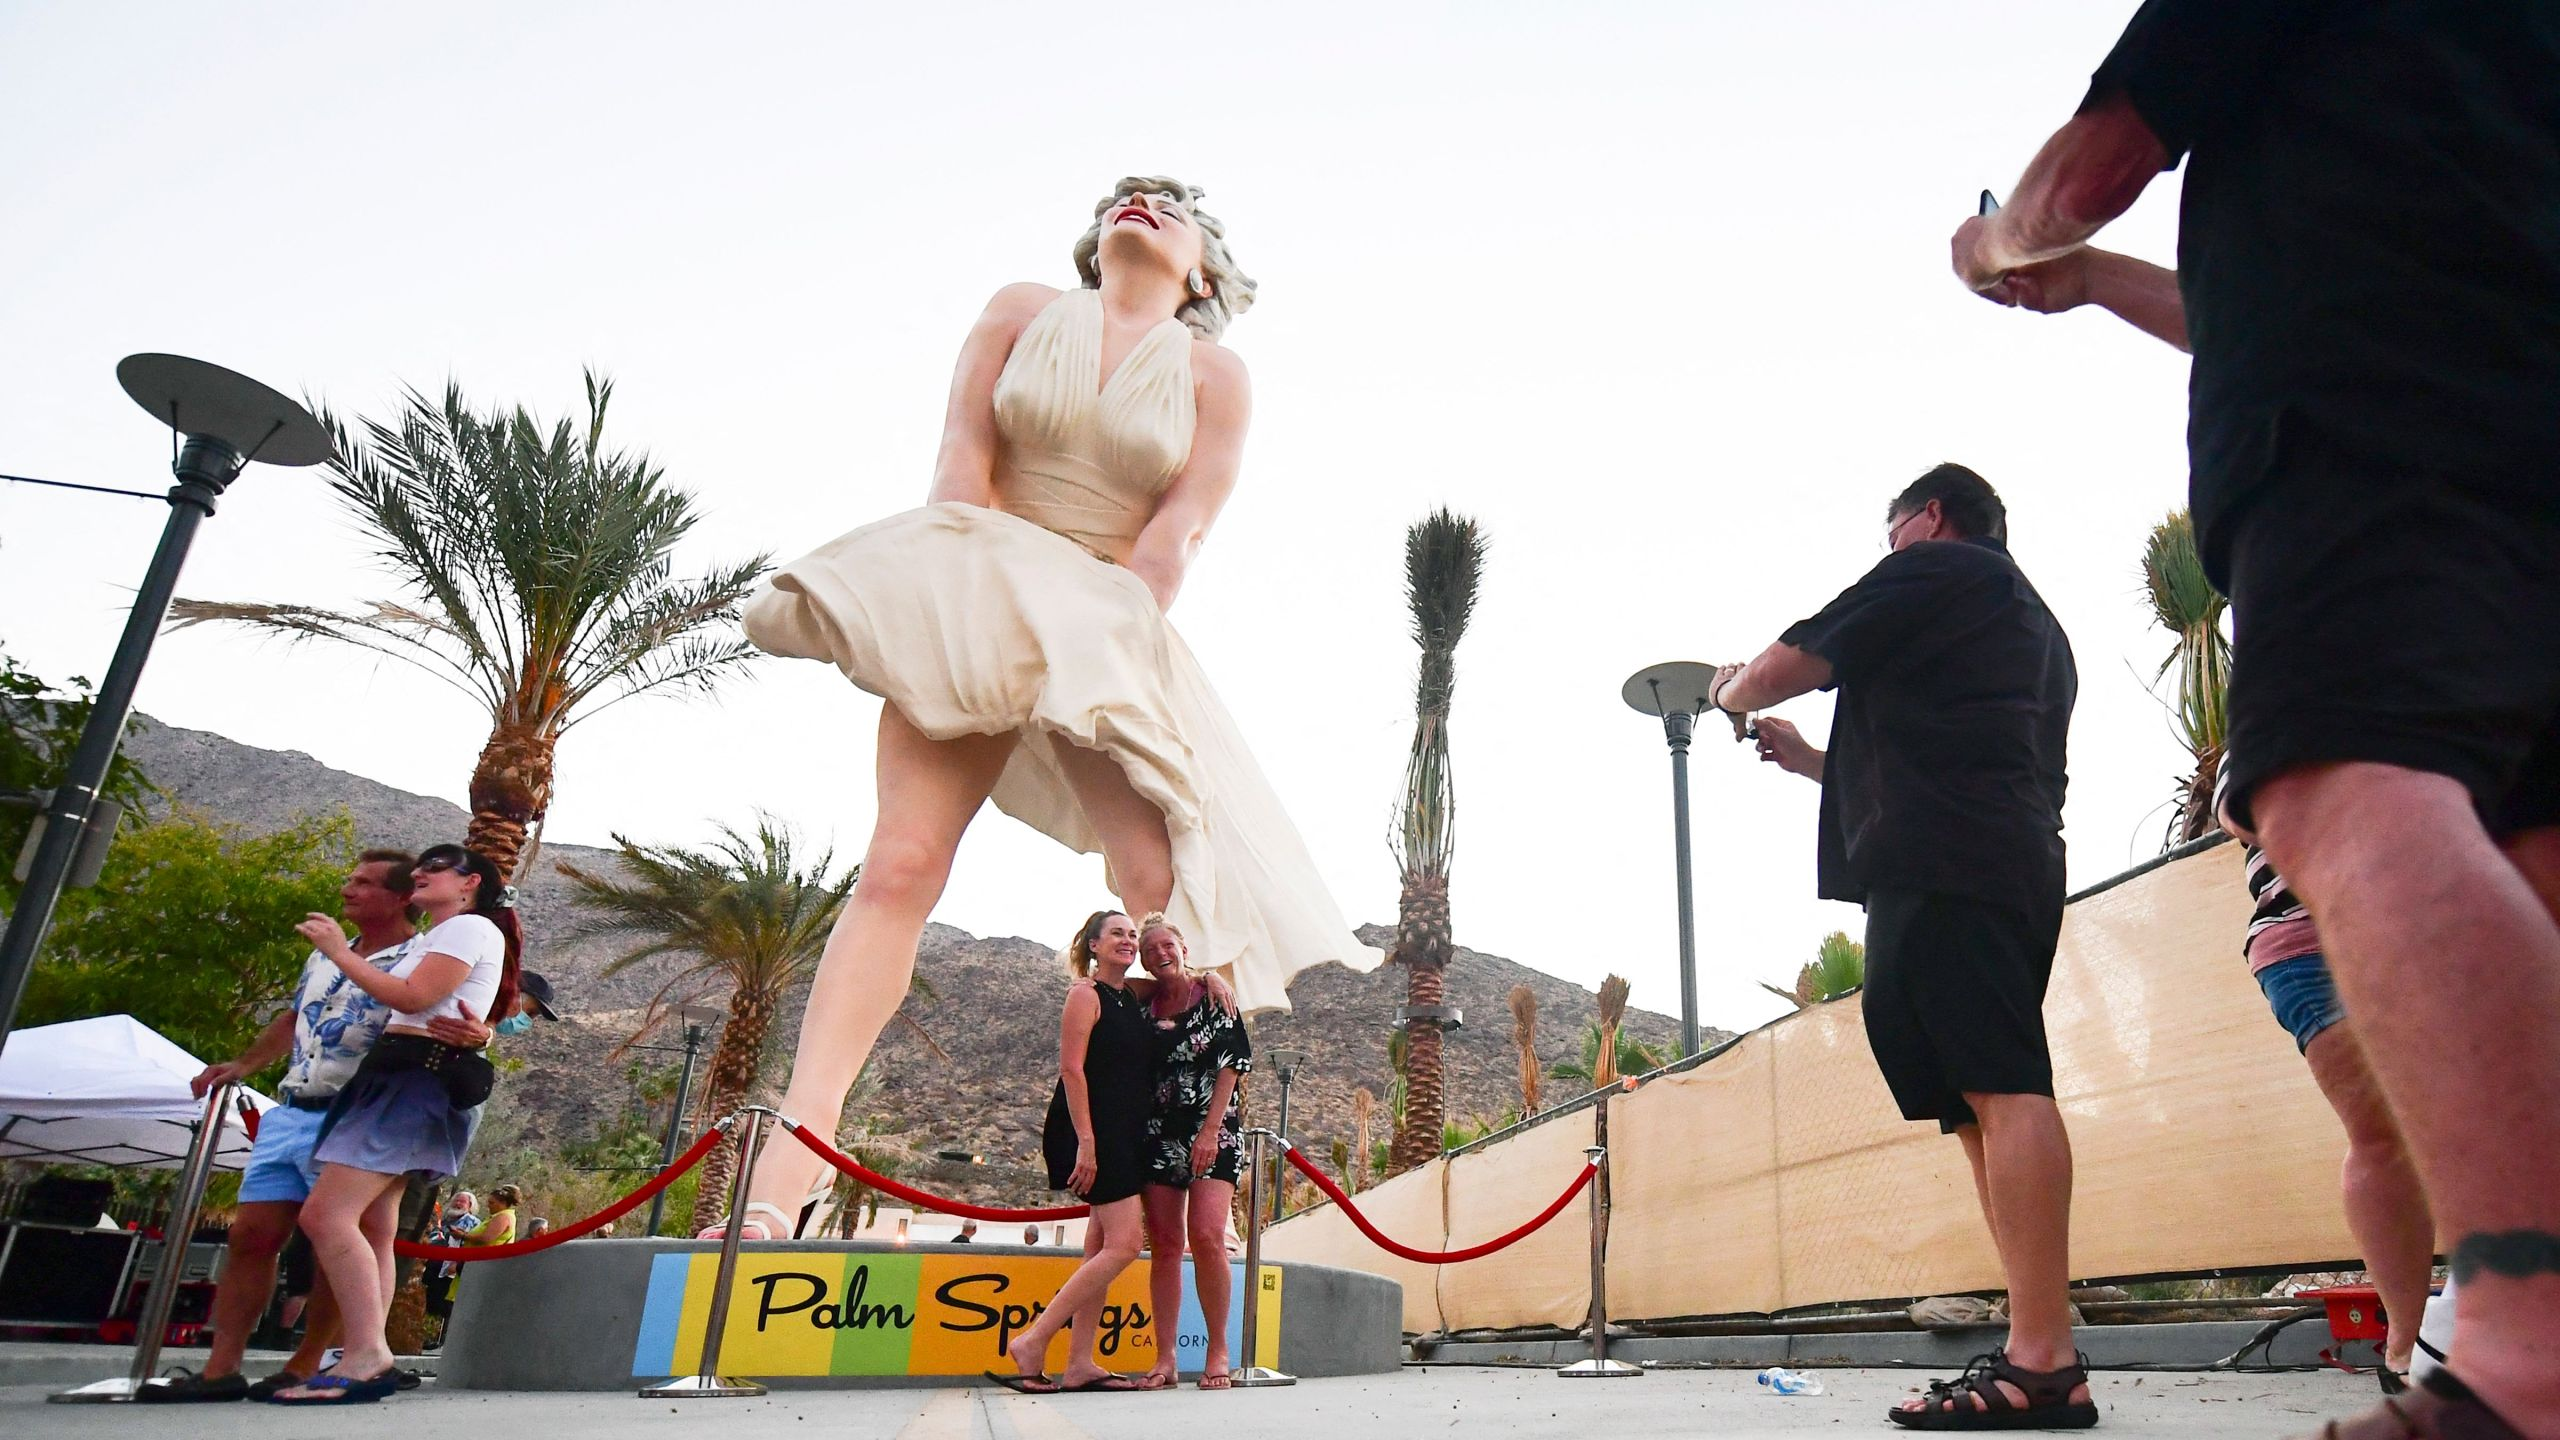 People visit the Forever Marilyn statue on its return to Palm Springs on June 20. Three days later, Palm Springs had rainfall — the city's first recorded rainfall on June 23 since 1922.(Frederic J. Brown / AFP / Getty Images)